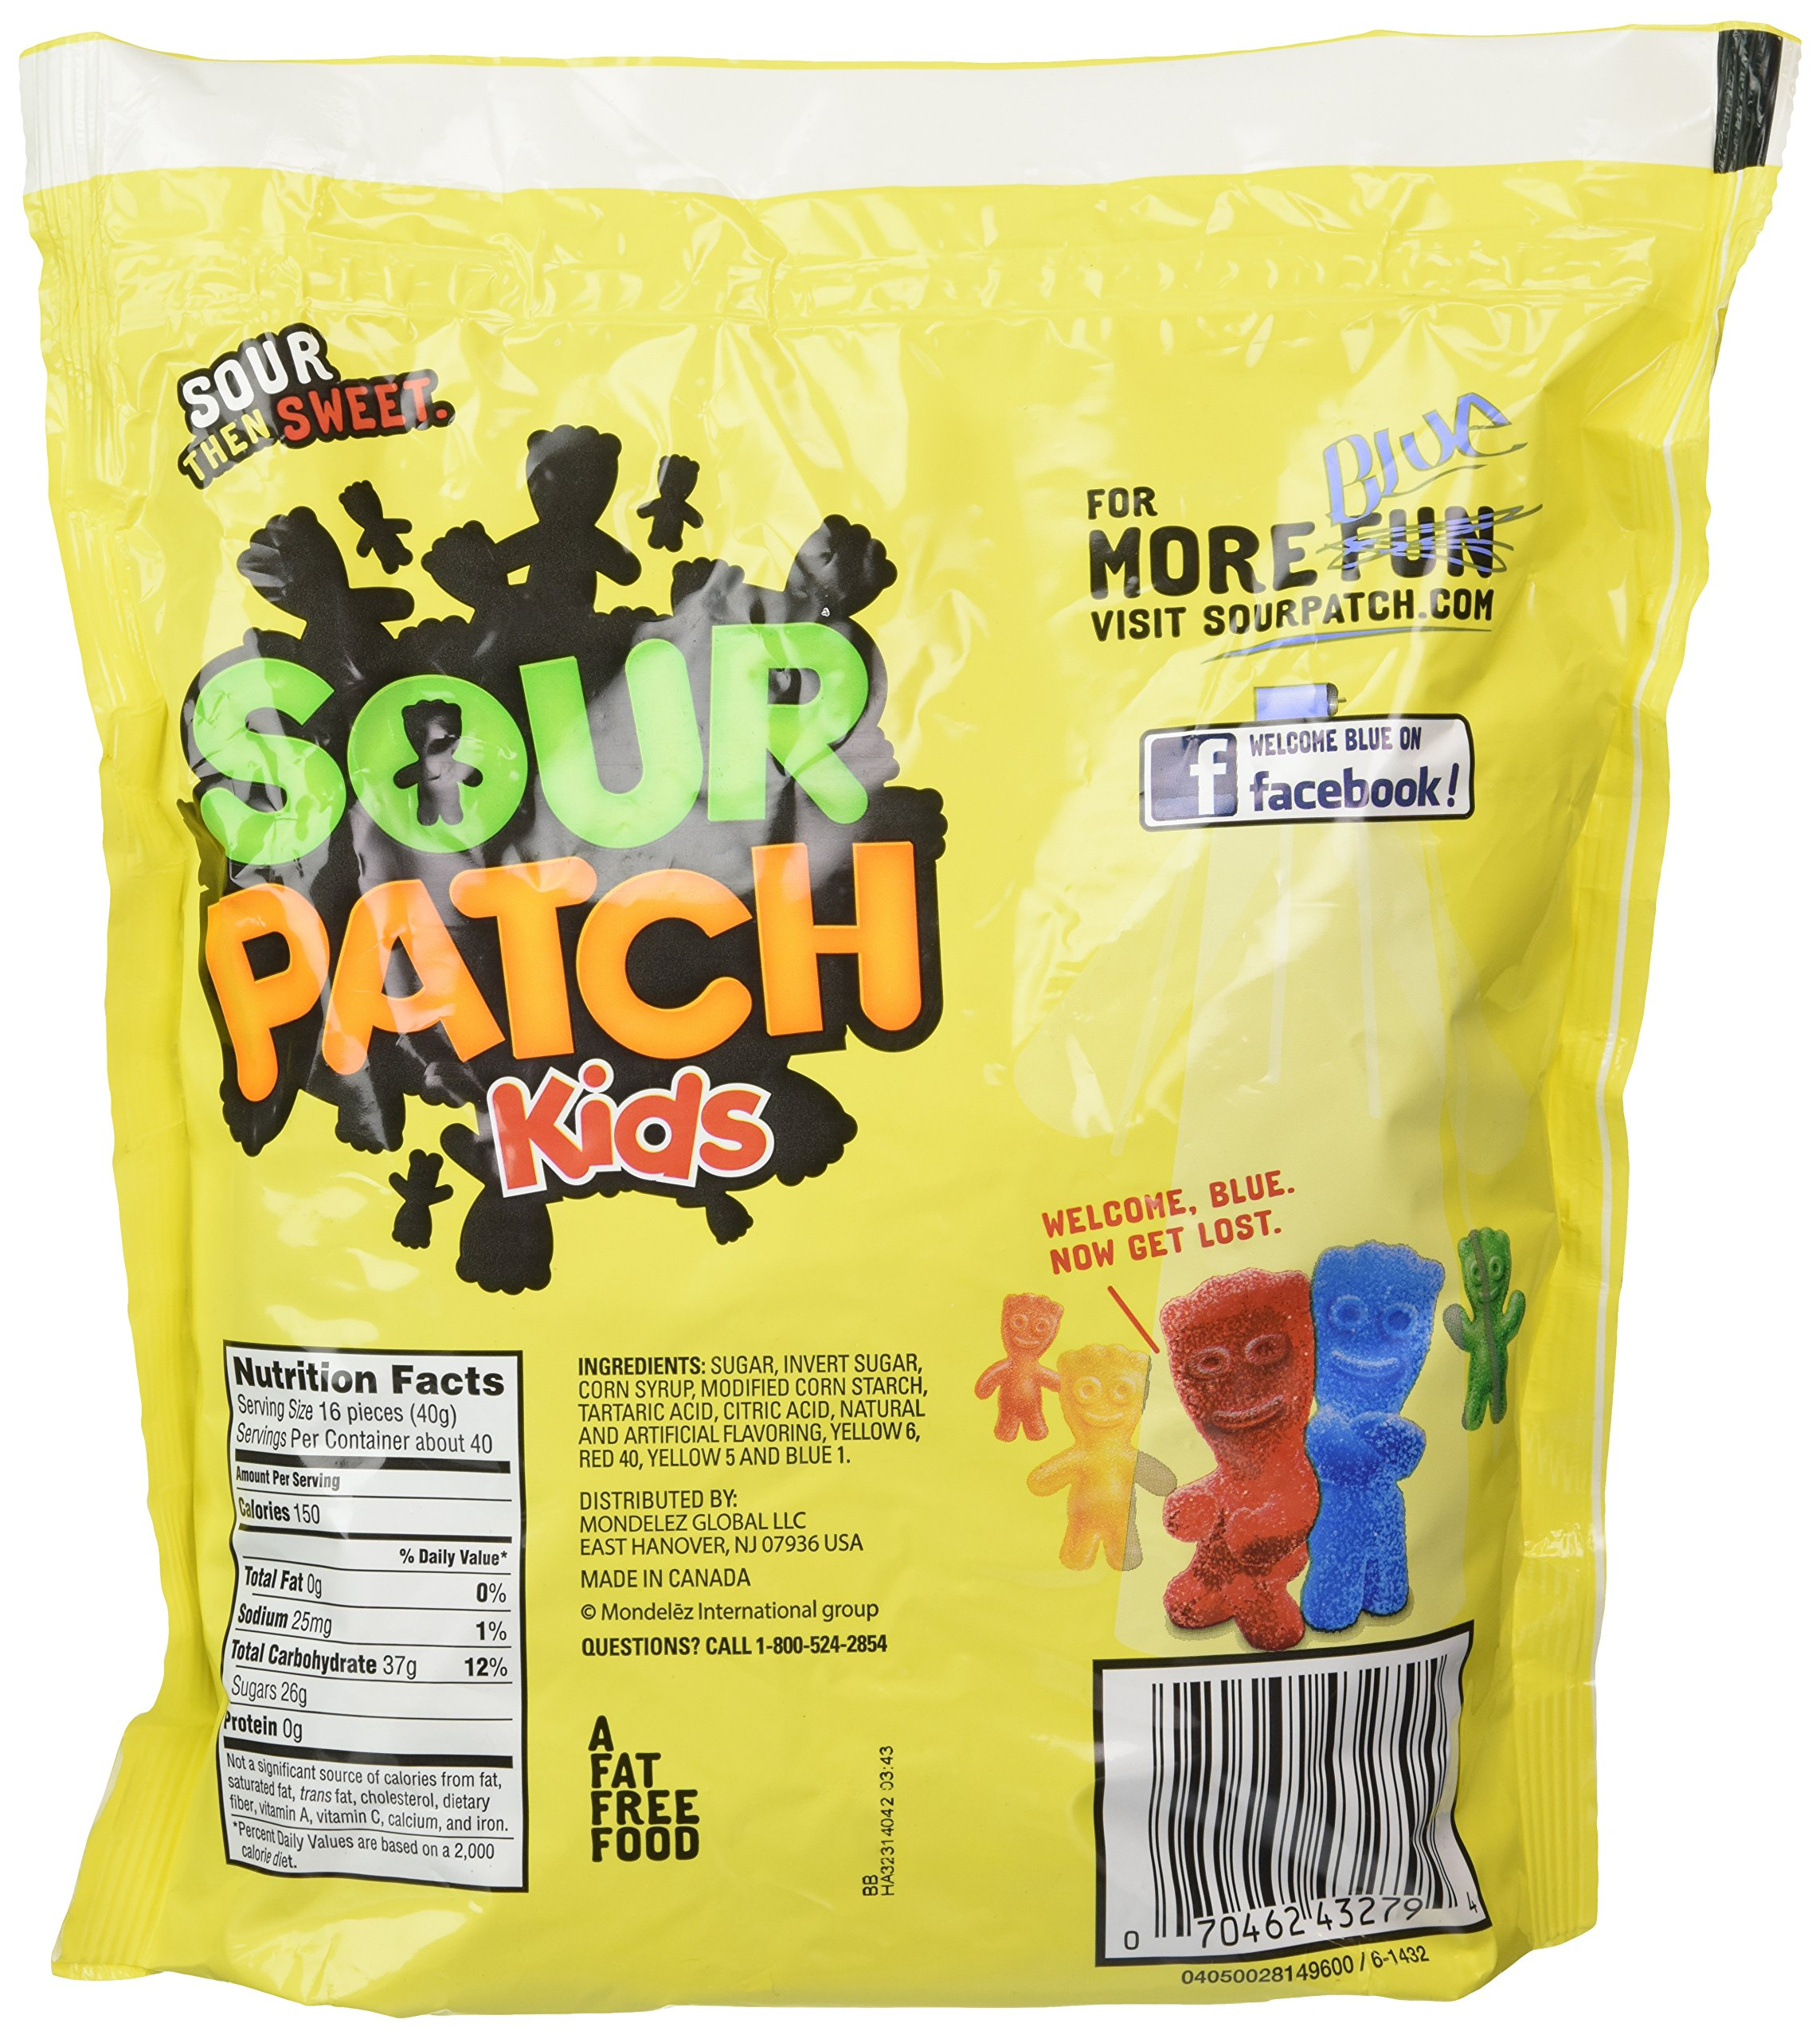 Sour Patch Kids Sweet and Sour Gummy Candy (Original, 3.5 Pound Bag)